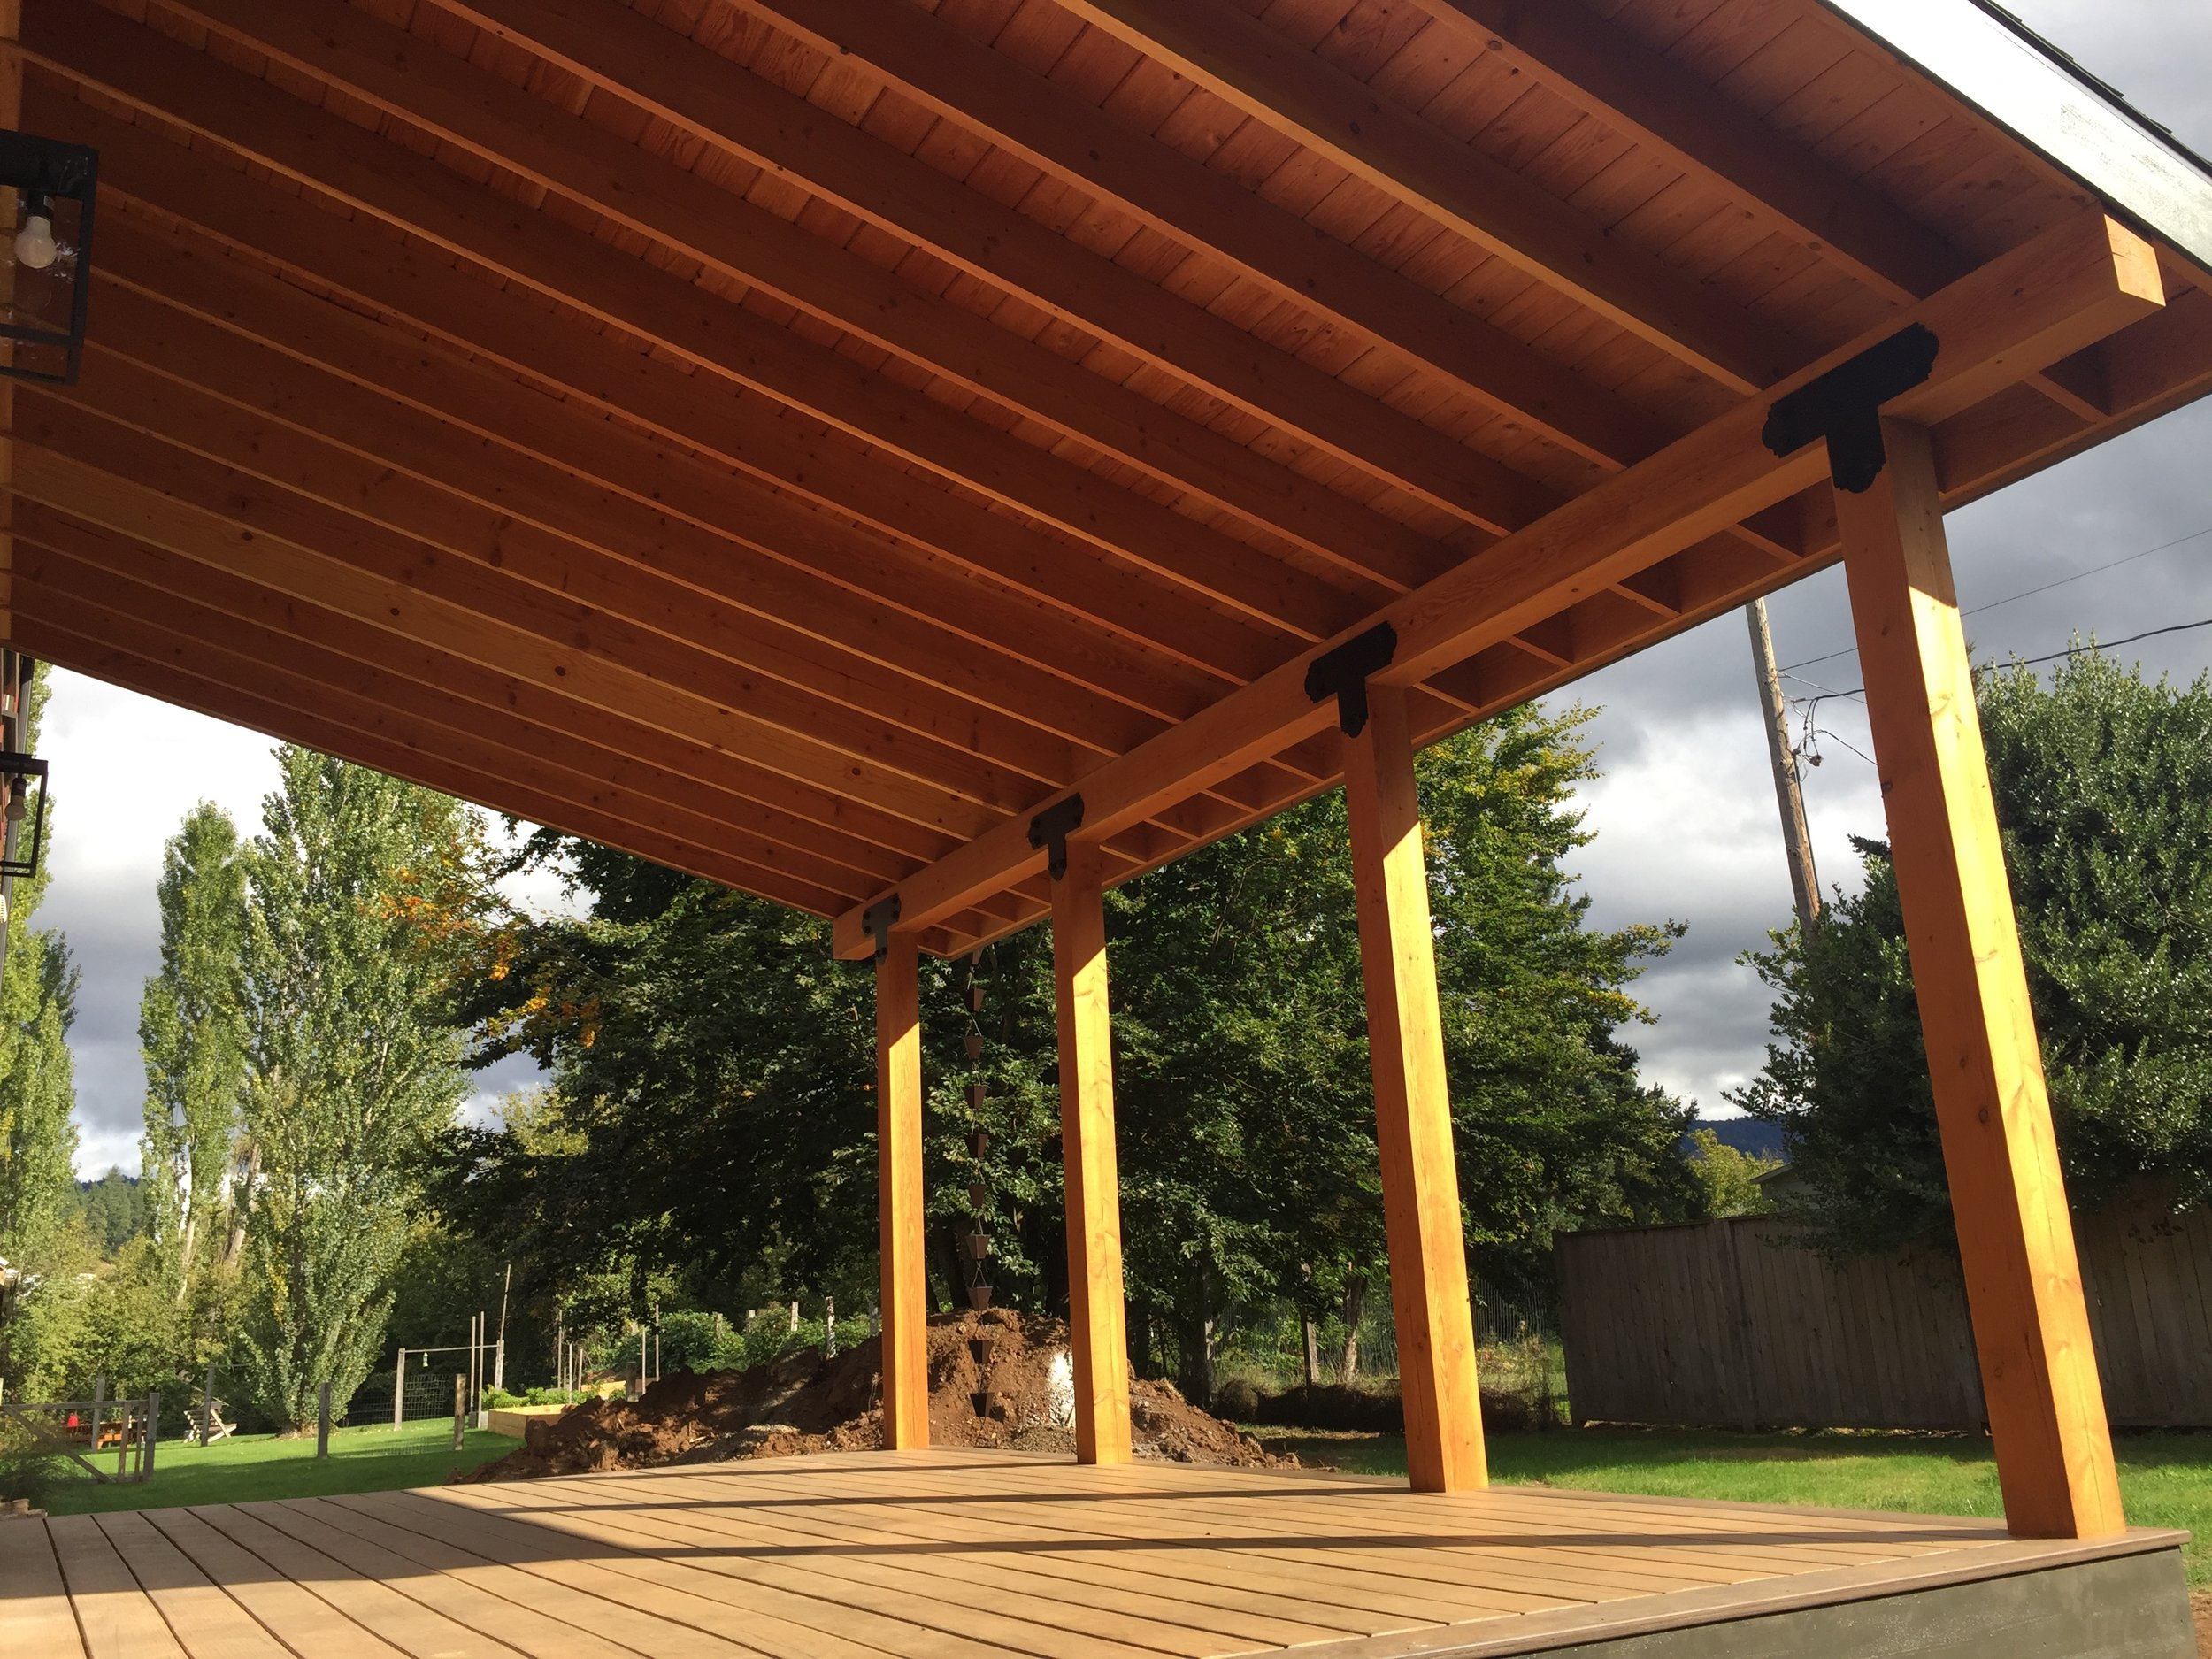 Decking, Fencing, and Pergolas - Custom decks, fences, railings, pergolas, gazebos, porches, trellis, ramps, platforms, enclosures, and other outdoor structures. Our specialized team of builders have over 50 years of combined experience. As with all of our construction projects, we strive to use earth friendly and sustainable materials. For your specific deck or fence project, we can provide responsibly harvested lumber, including hardwoods, as well as engineered solutions.